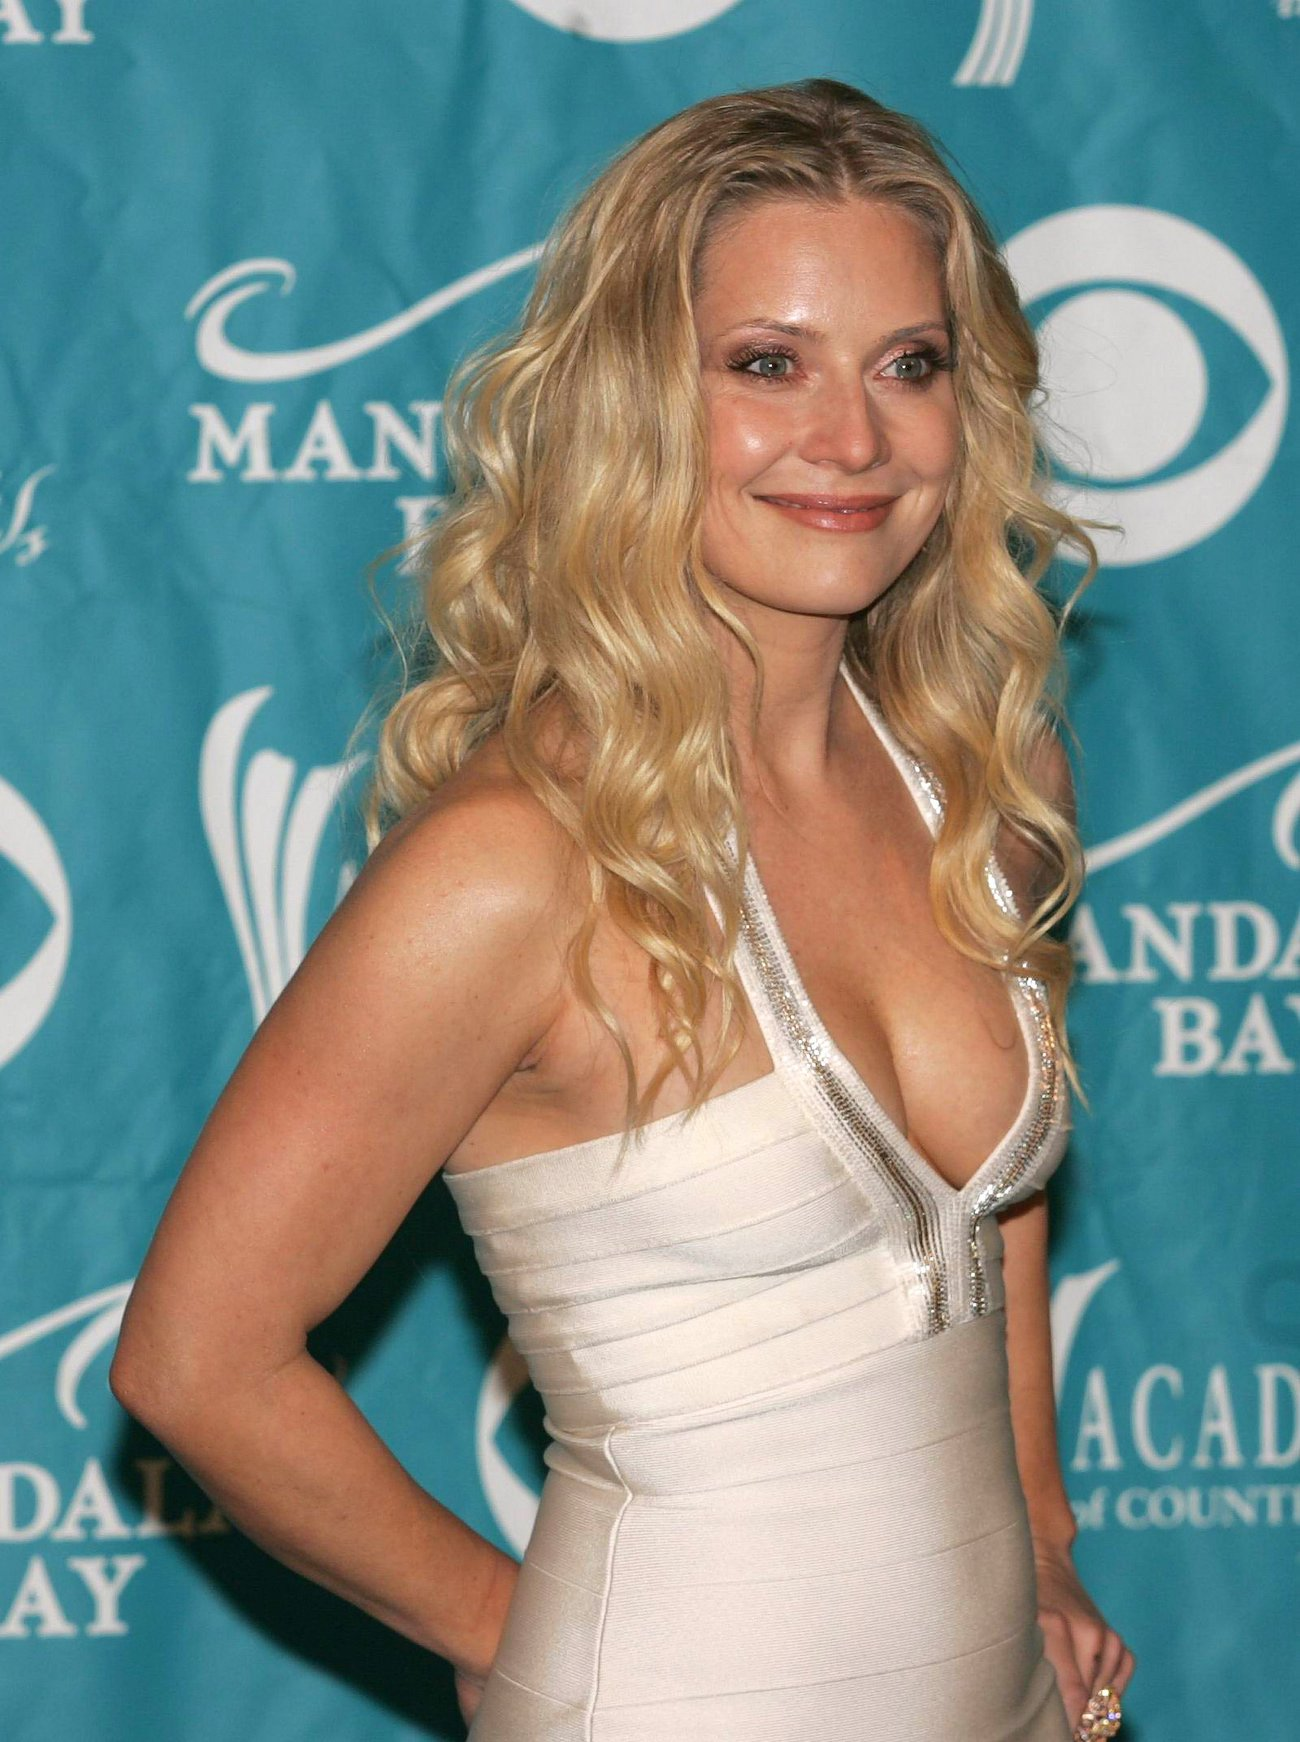 Emily Procter | Viewing picture ikke-navngivet.jpg